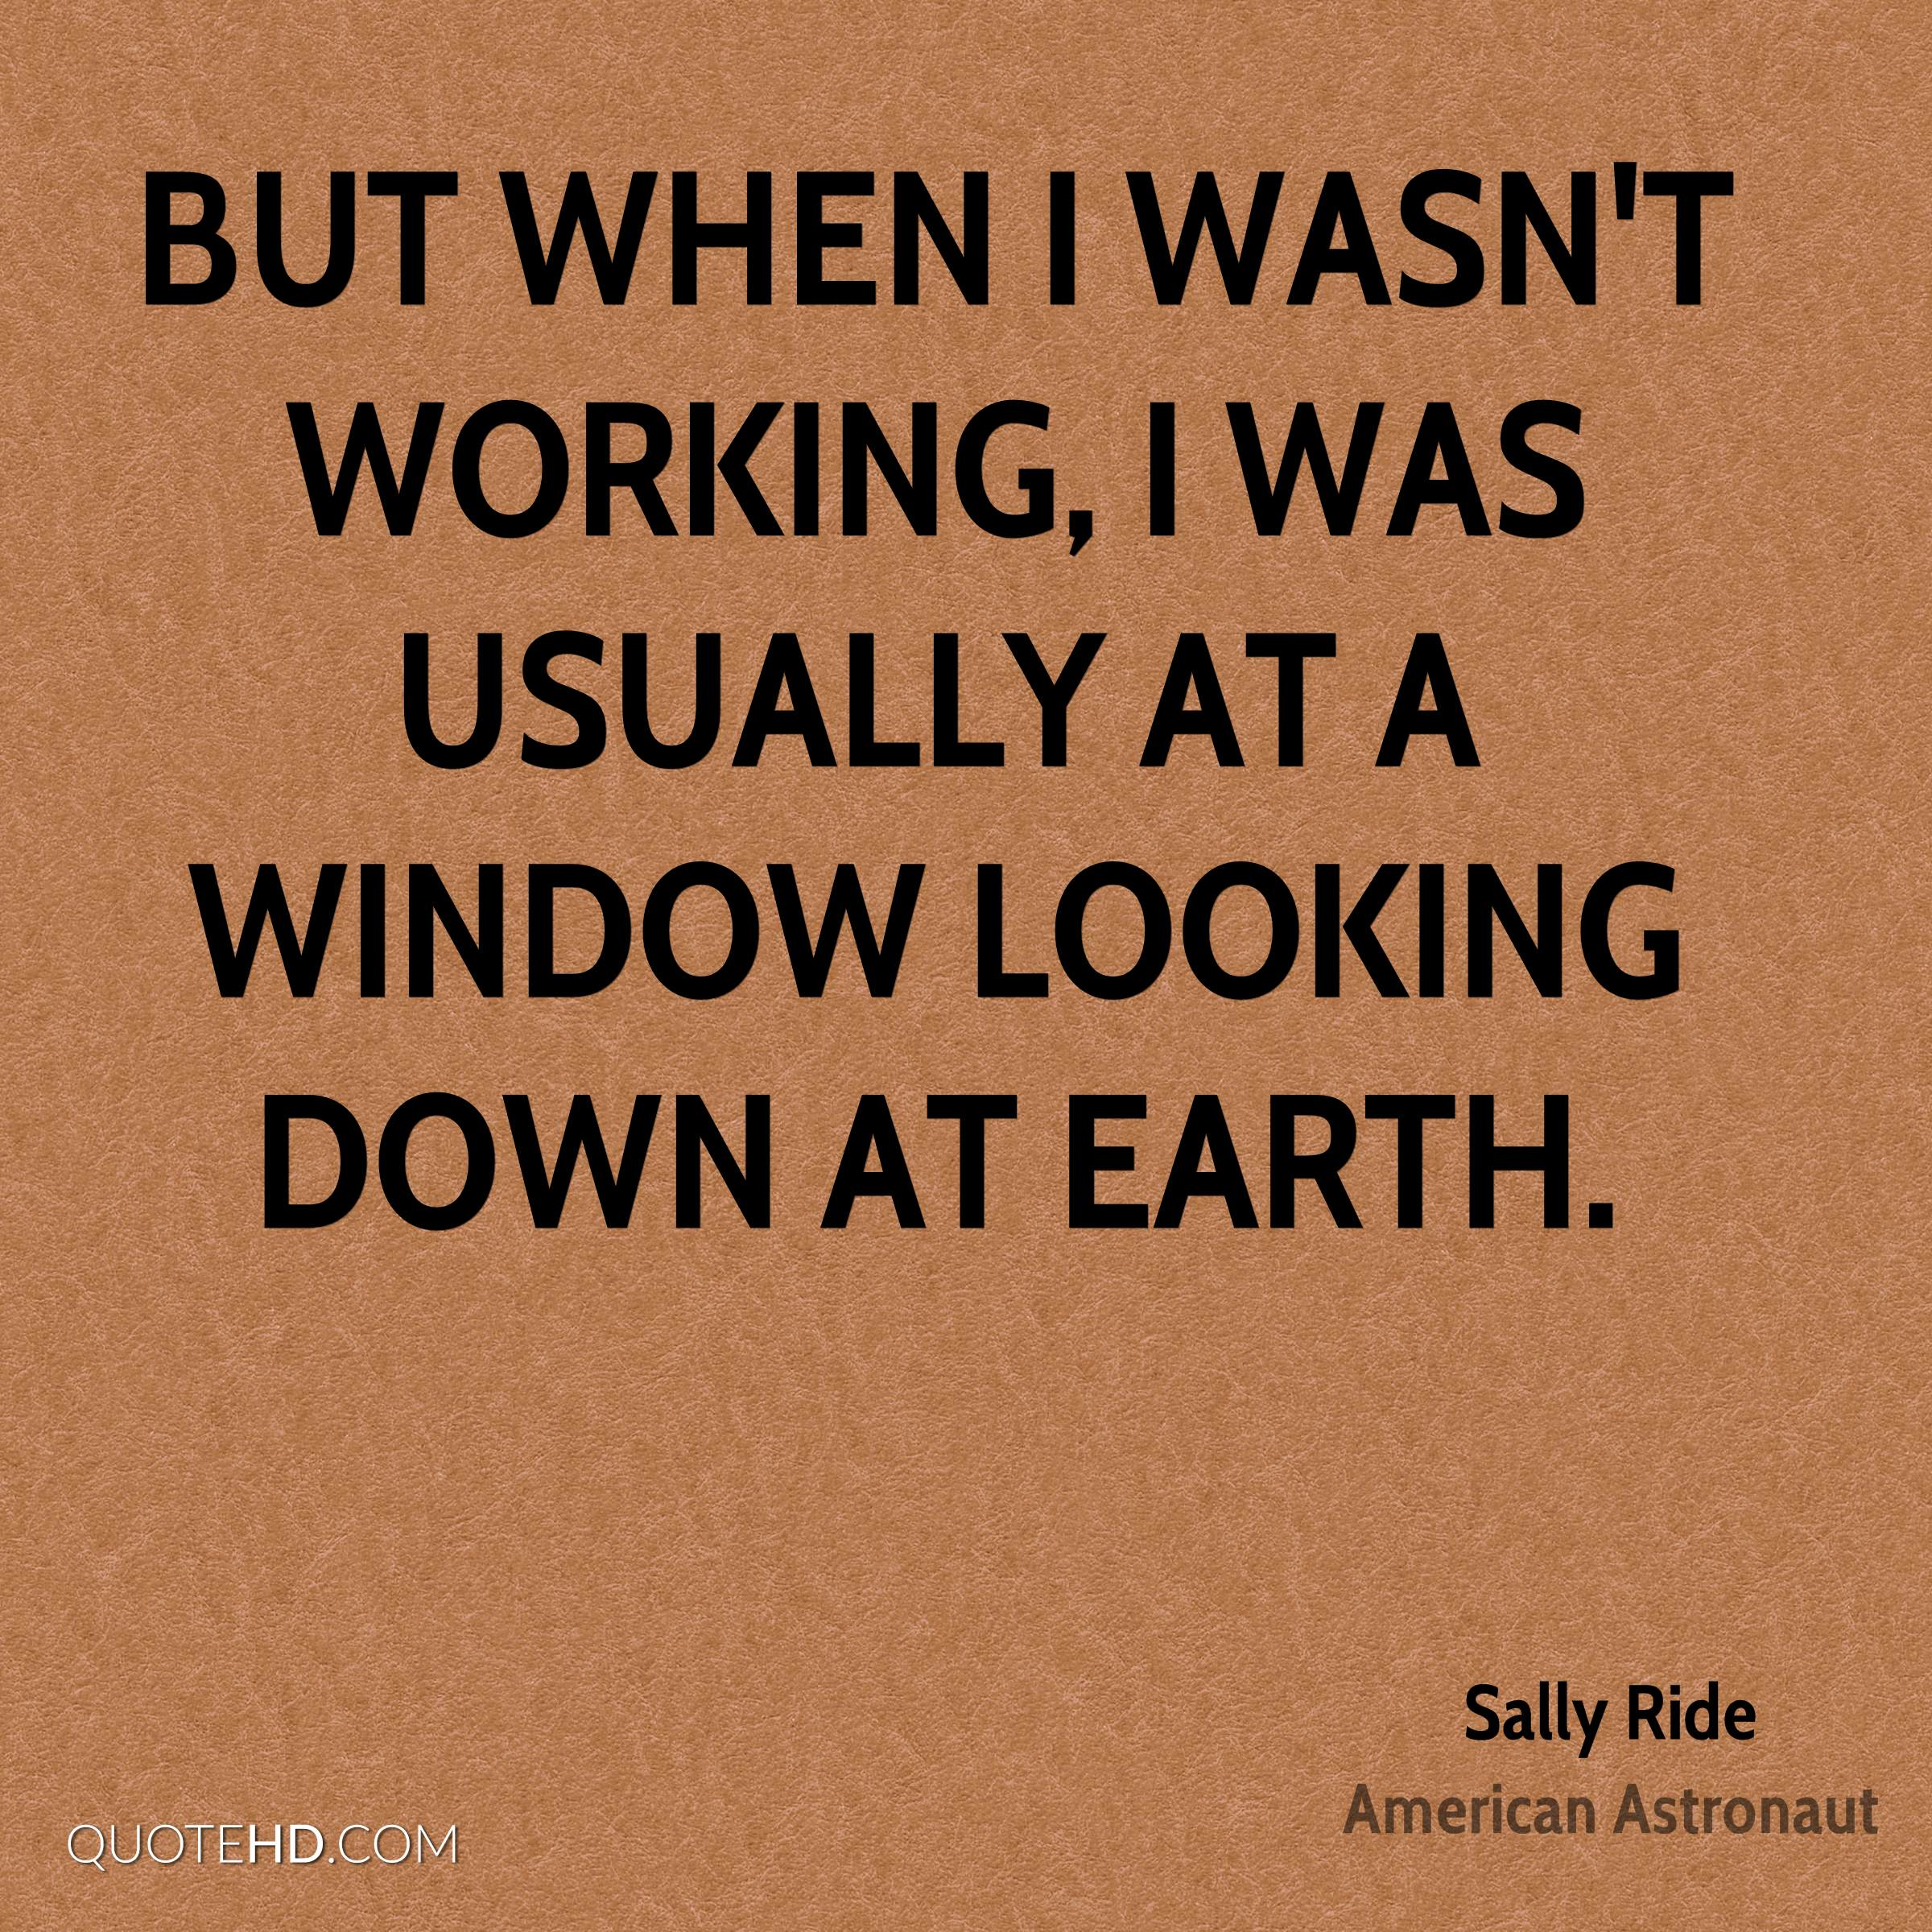 But when I wasn't working, I was usually at a window looking down at Earth.